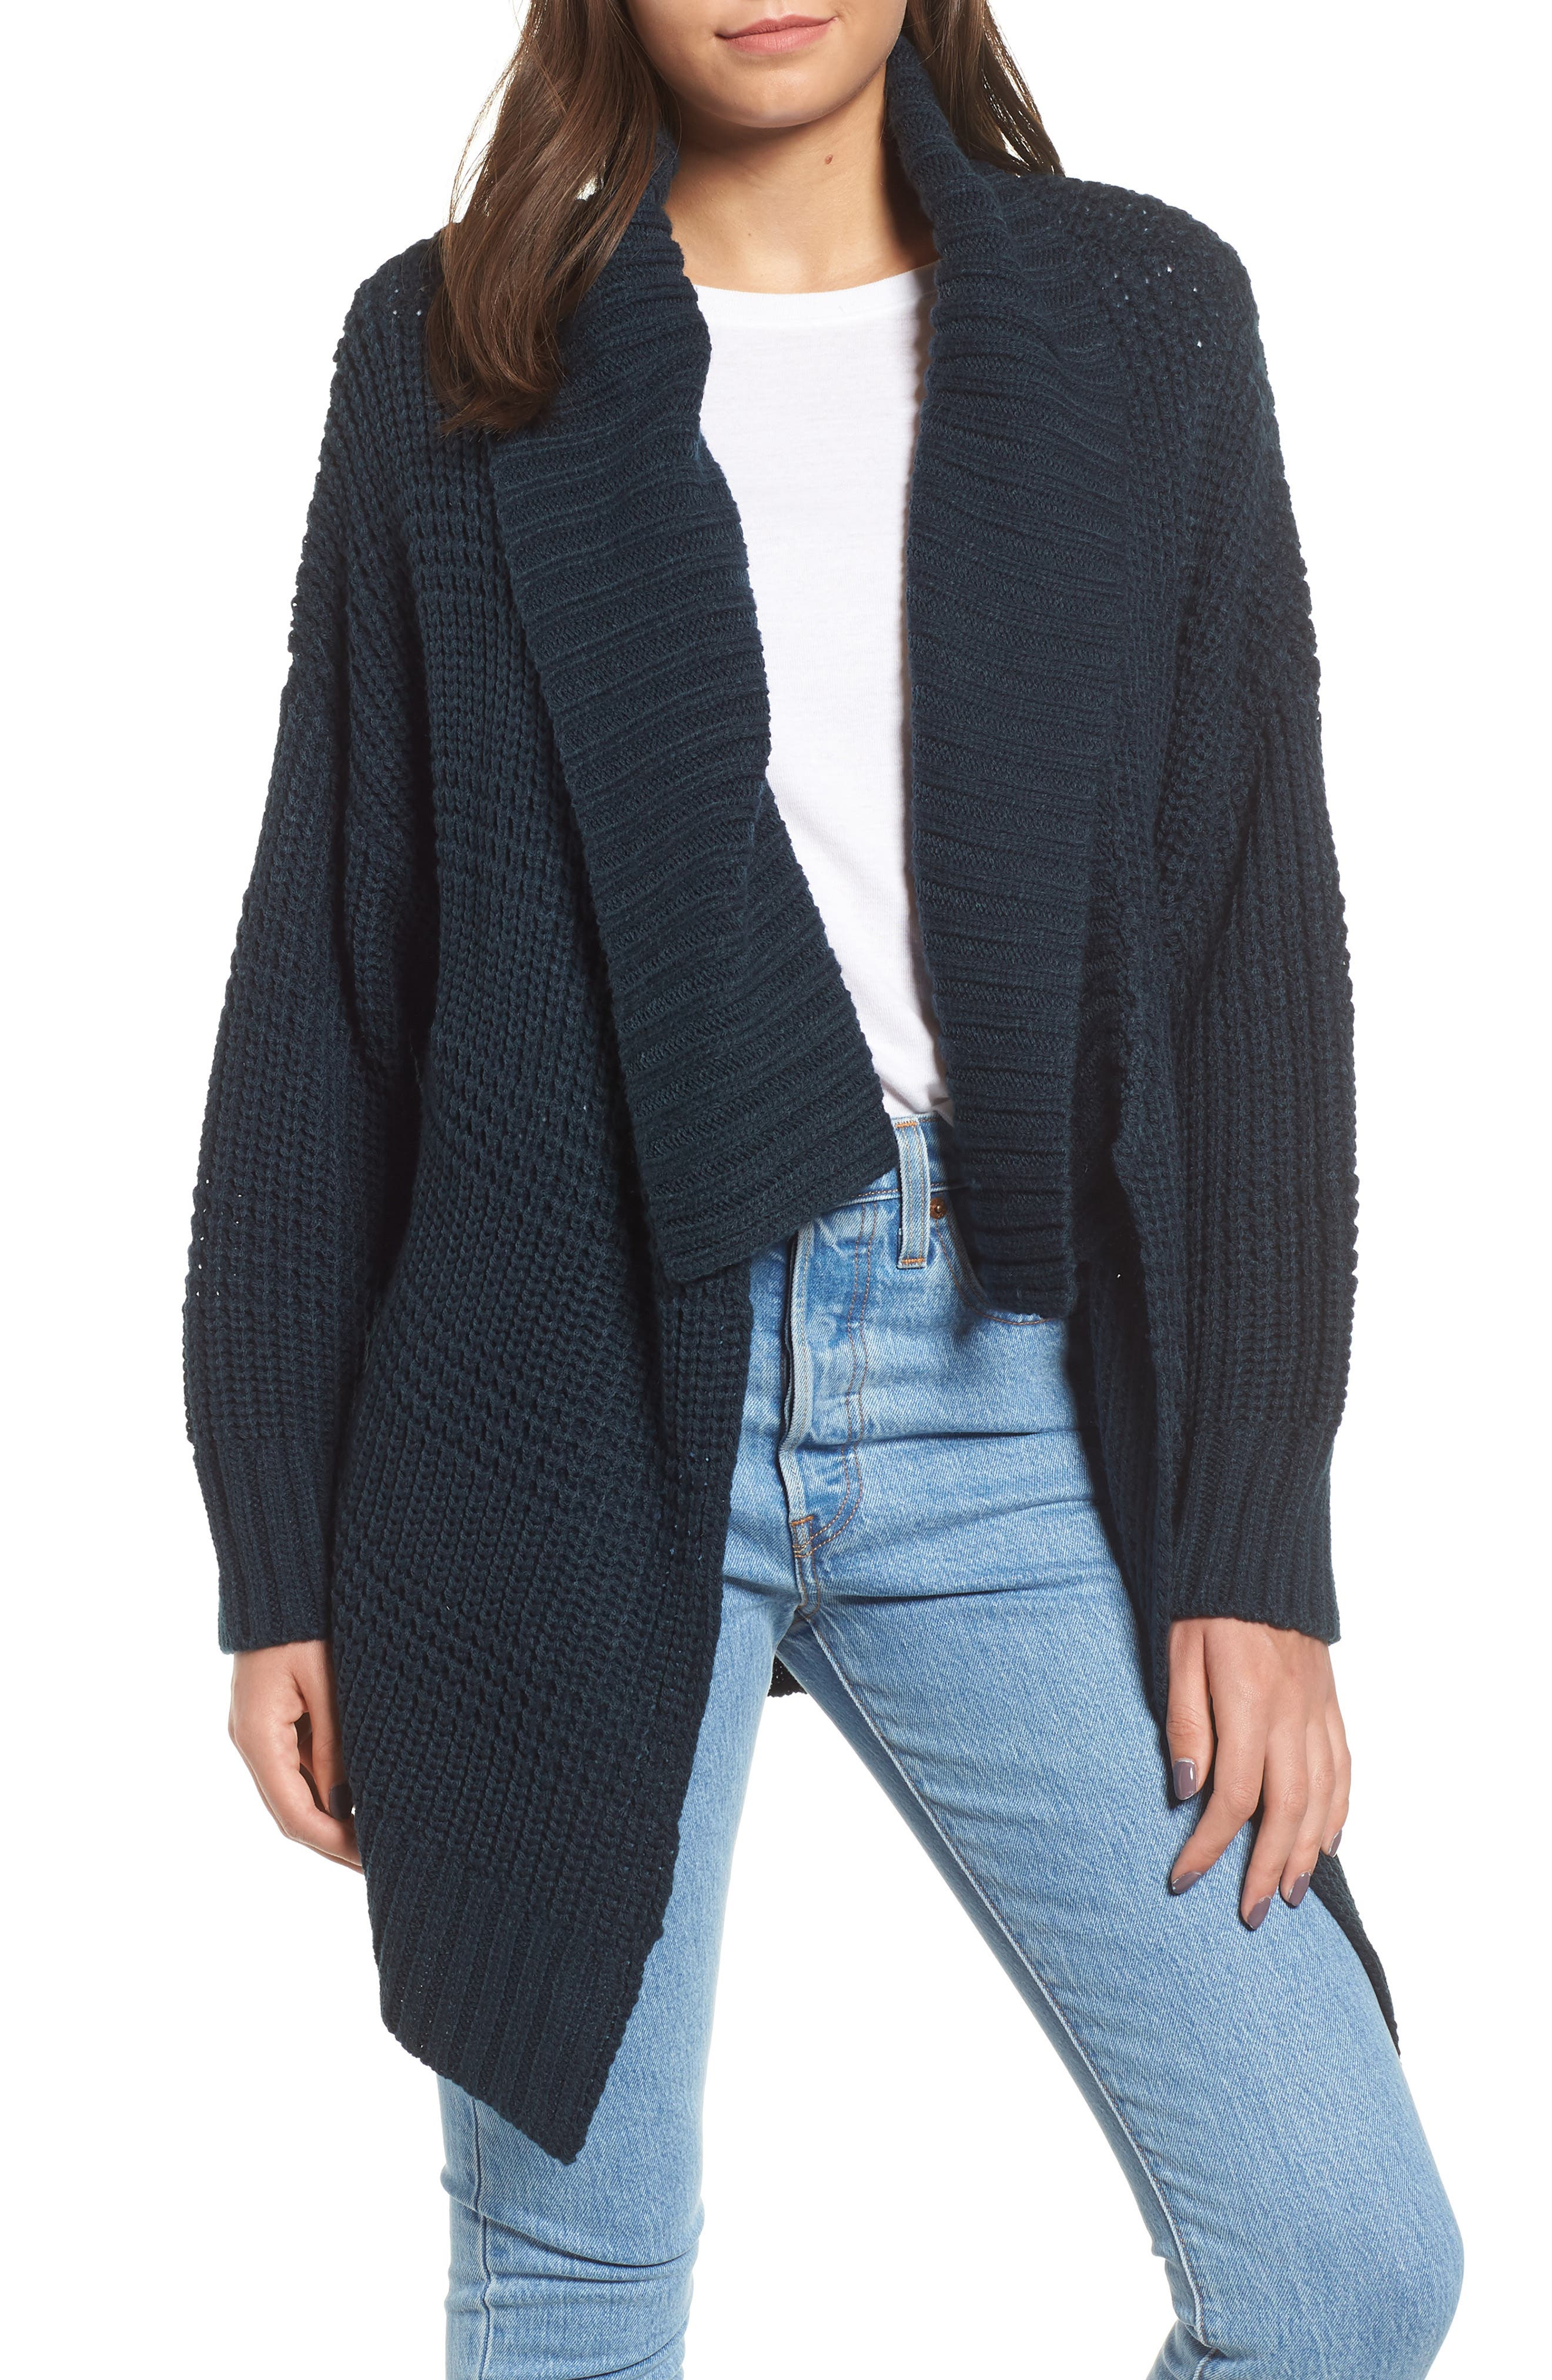 RVCA This Is It Cardigan in Carbon